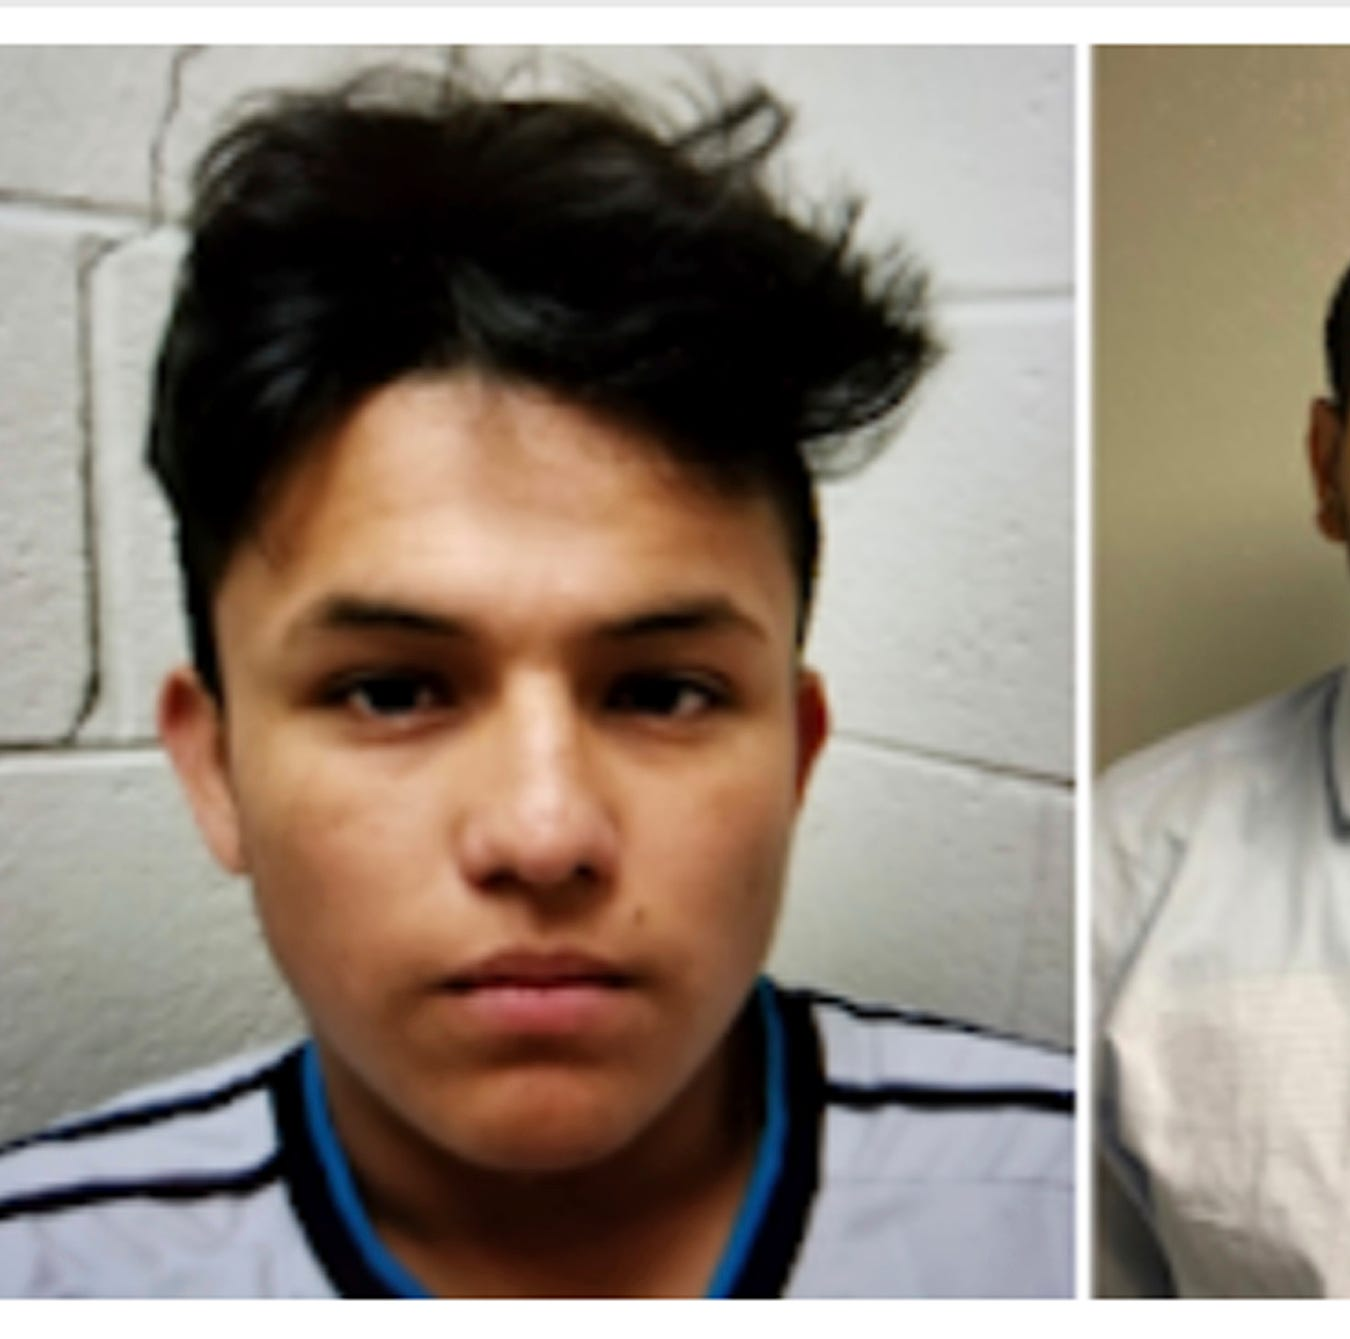 MS-13 gang members beat, stab Maryland teen to death: Police